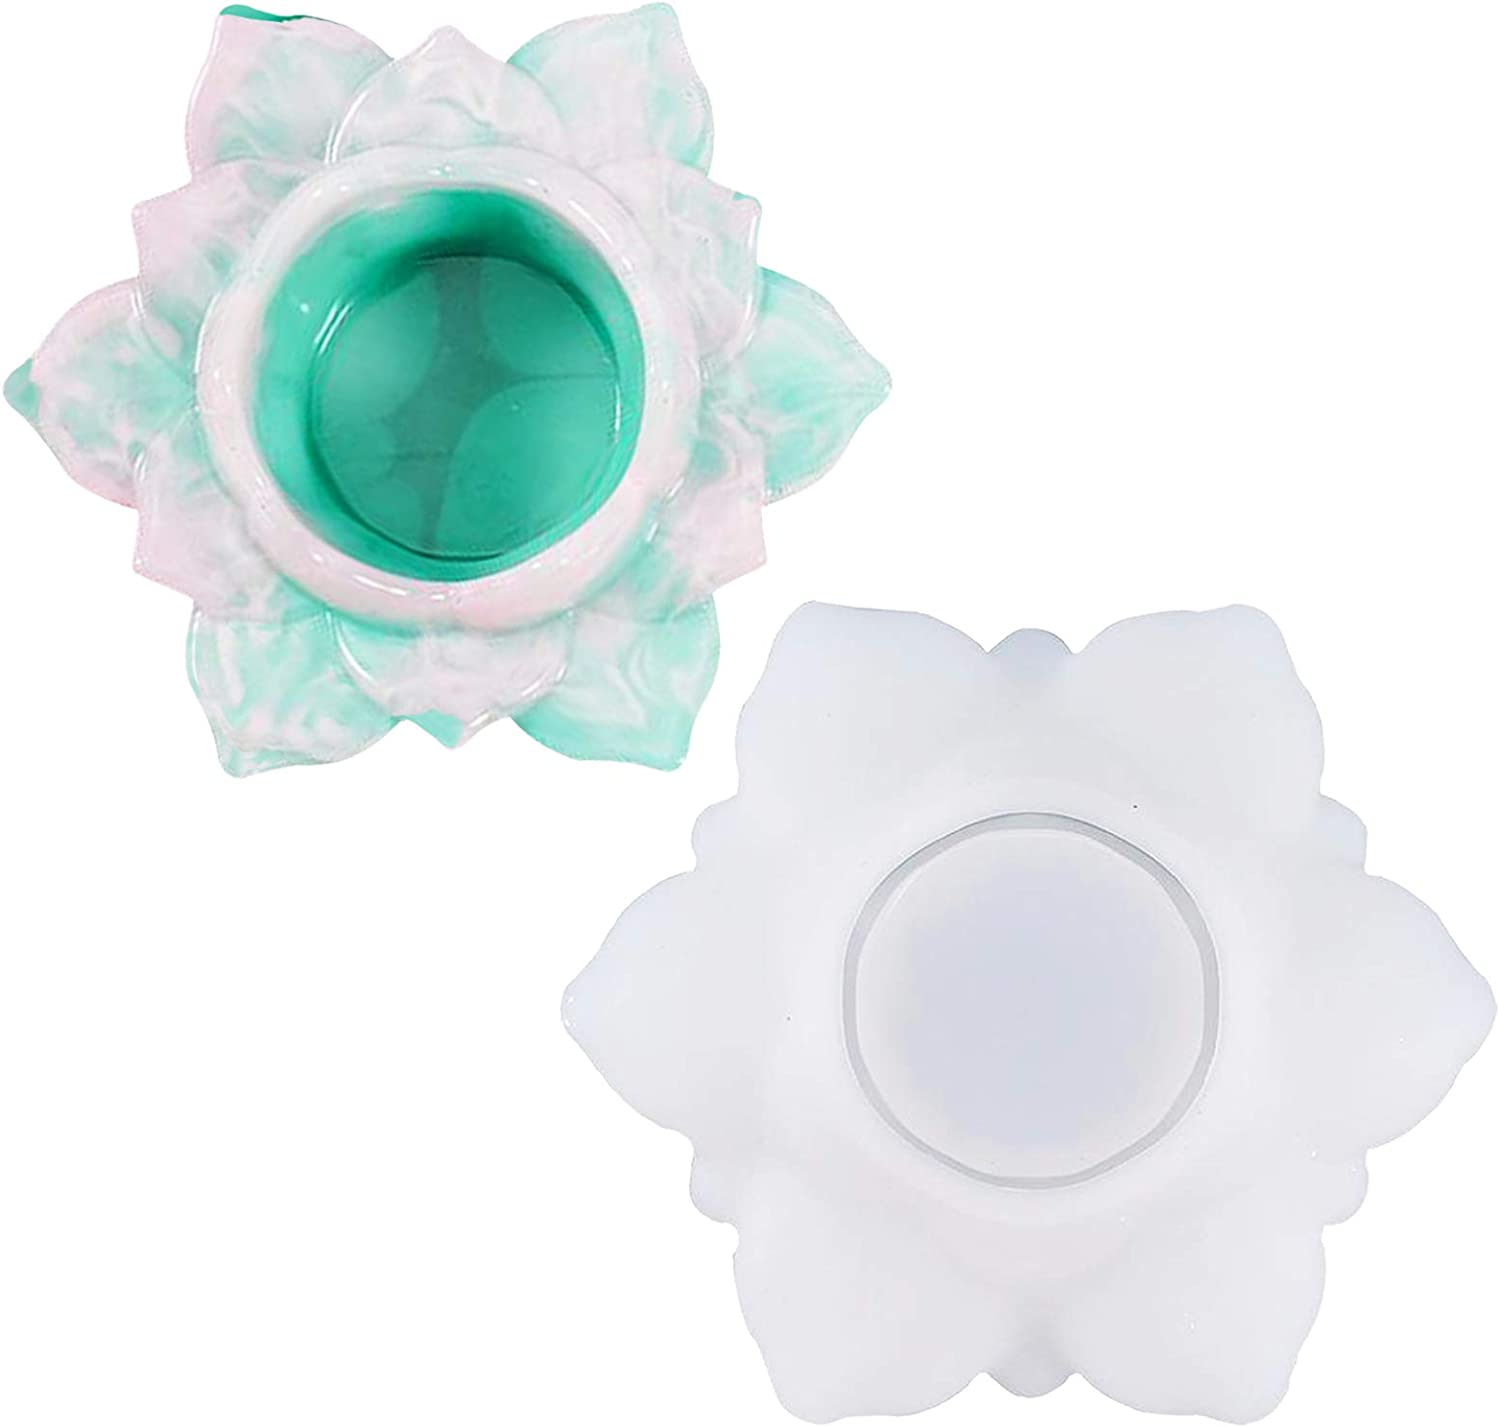 Shanglist Candle Holder Resin Clearance SALE! Limited time! Max 75% OFF Molds Candlestick Lotus Tealight